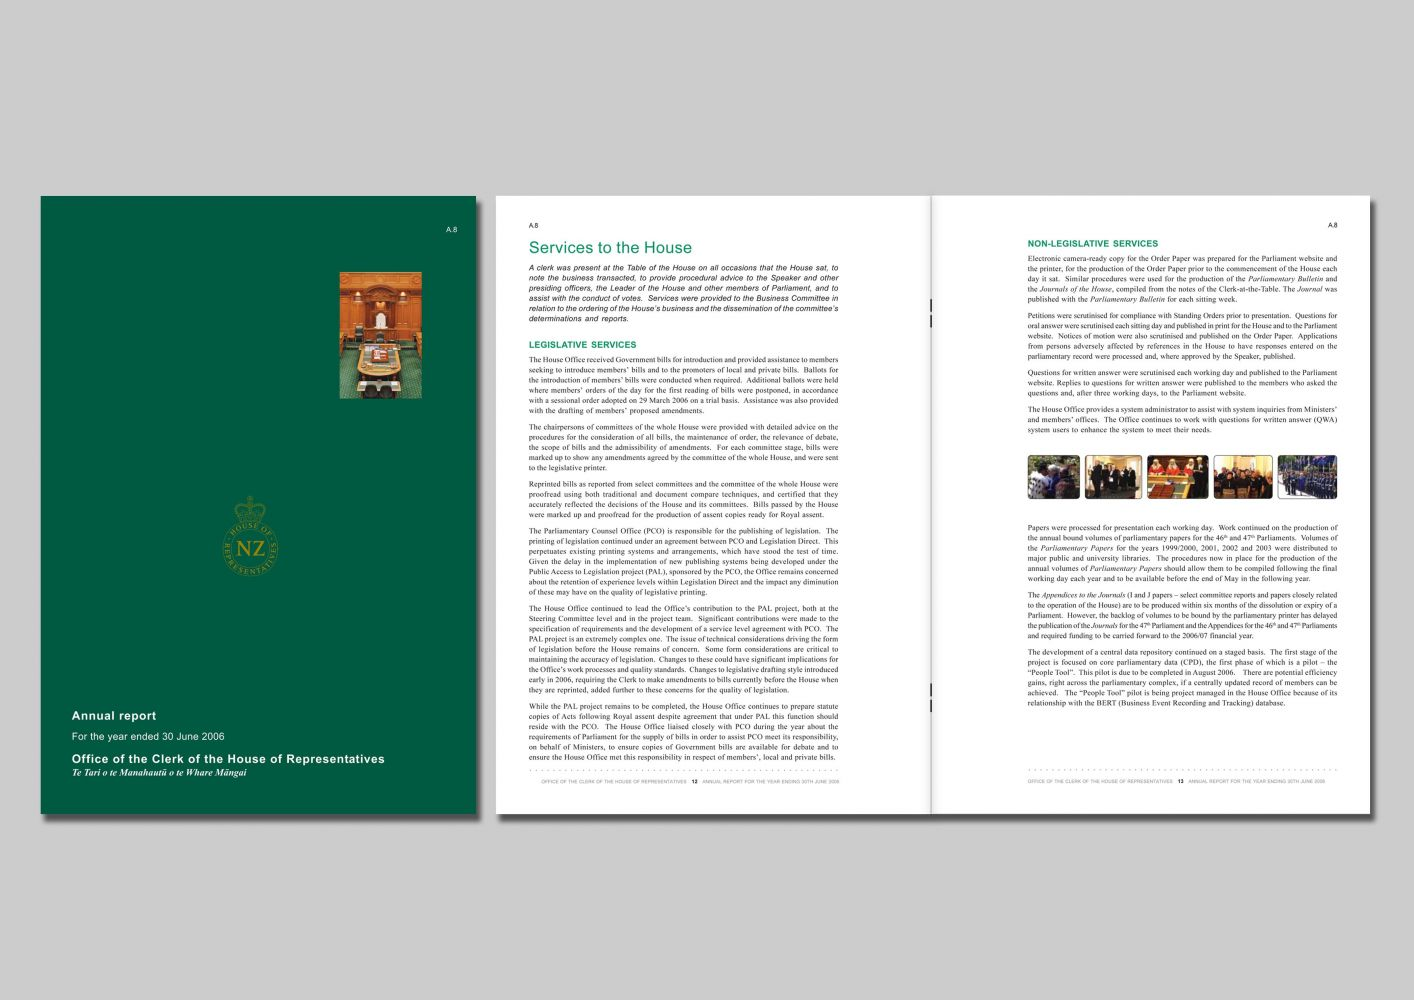 Office of the House of Representatives Annual Report